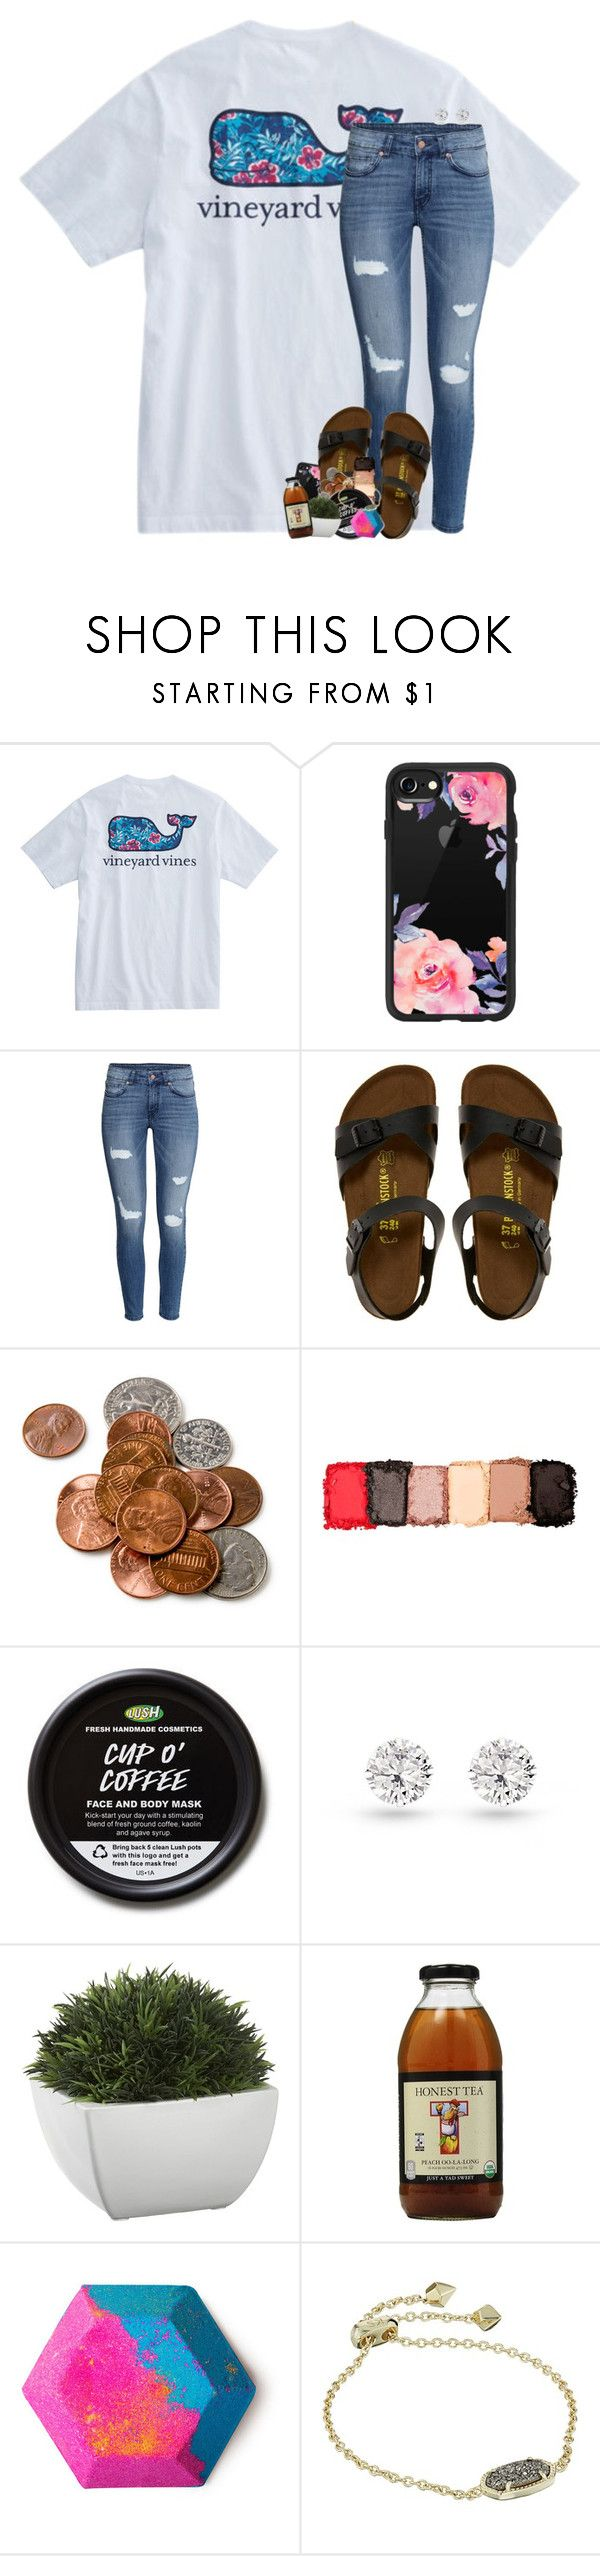 """""""we have to accept the things we cannot control"""" by theblonde07 ❤ liked on Polyvore featuring Casetify, H&M, Birkenstock, NYX, Crate and Barrel and Kendra Scott"""